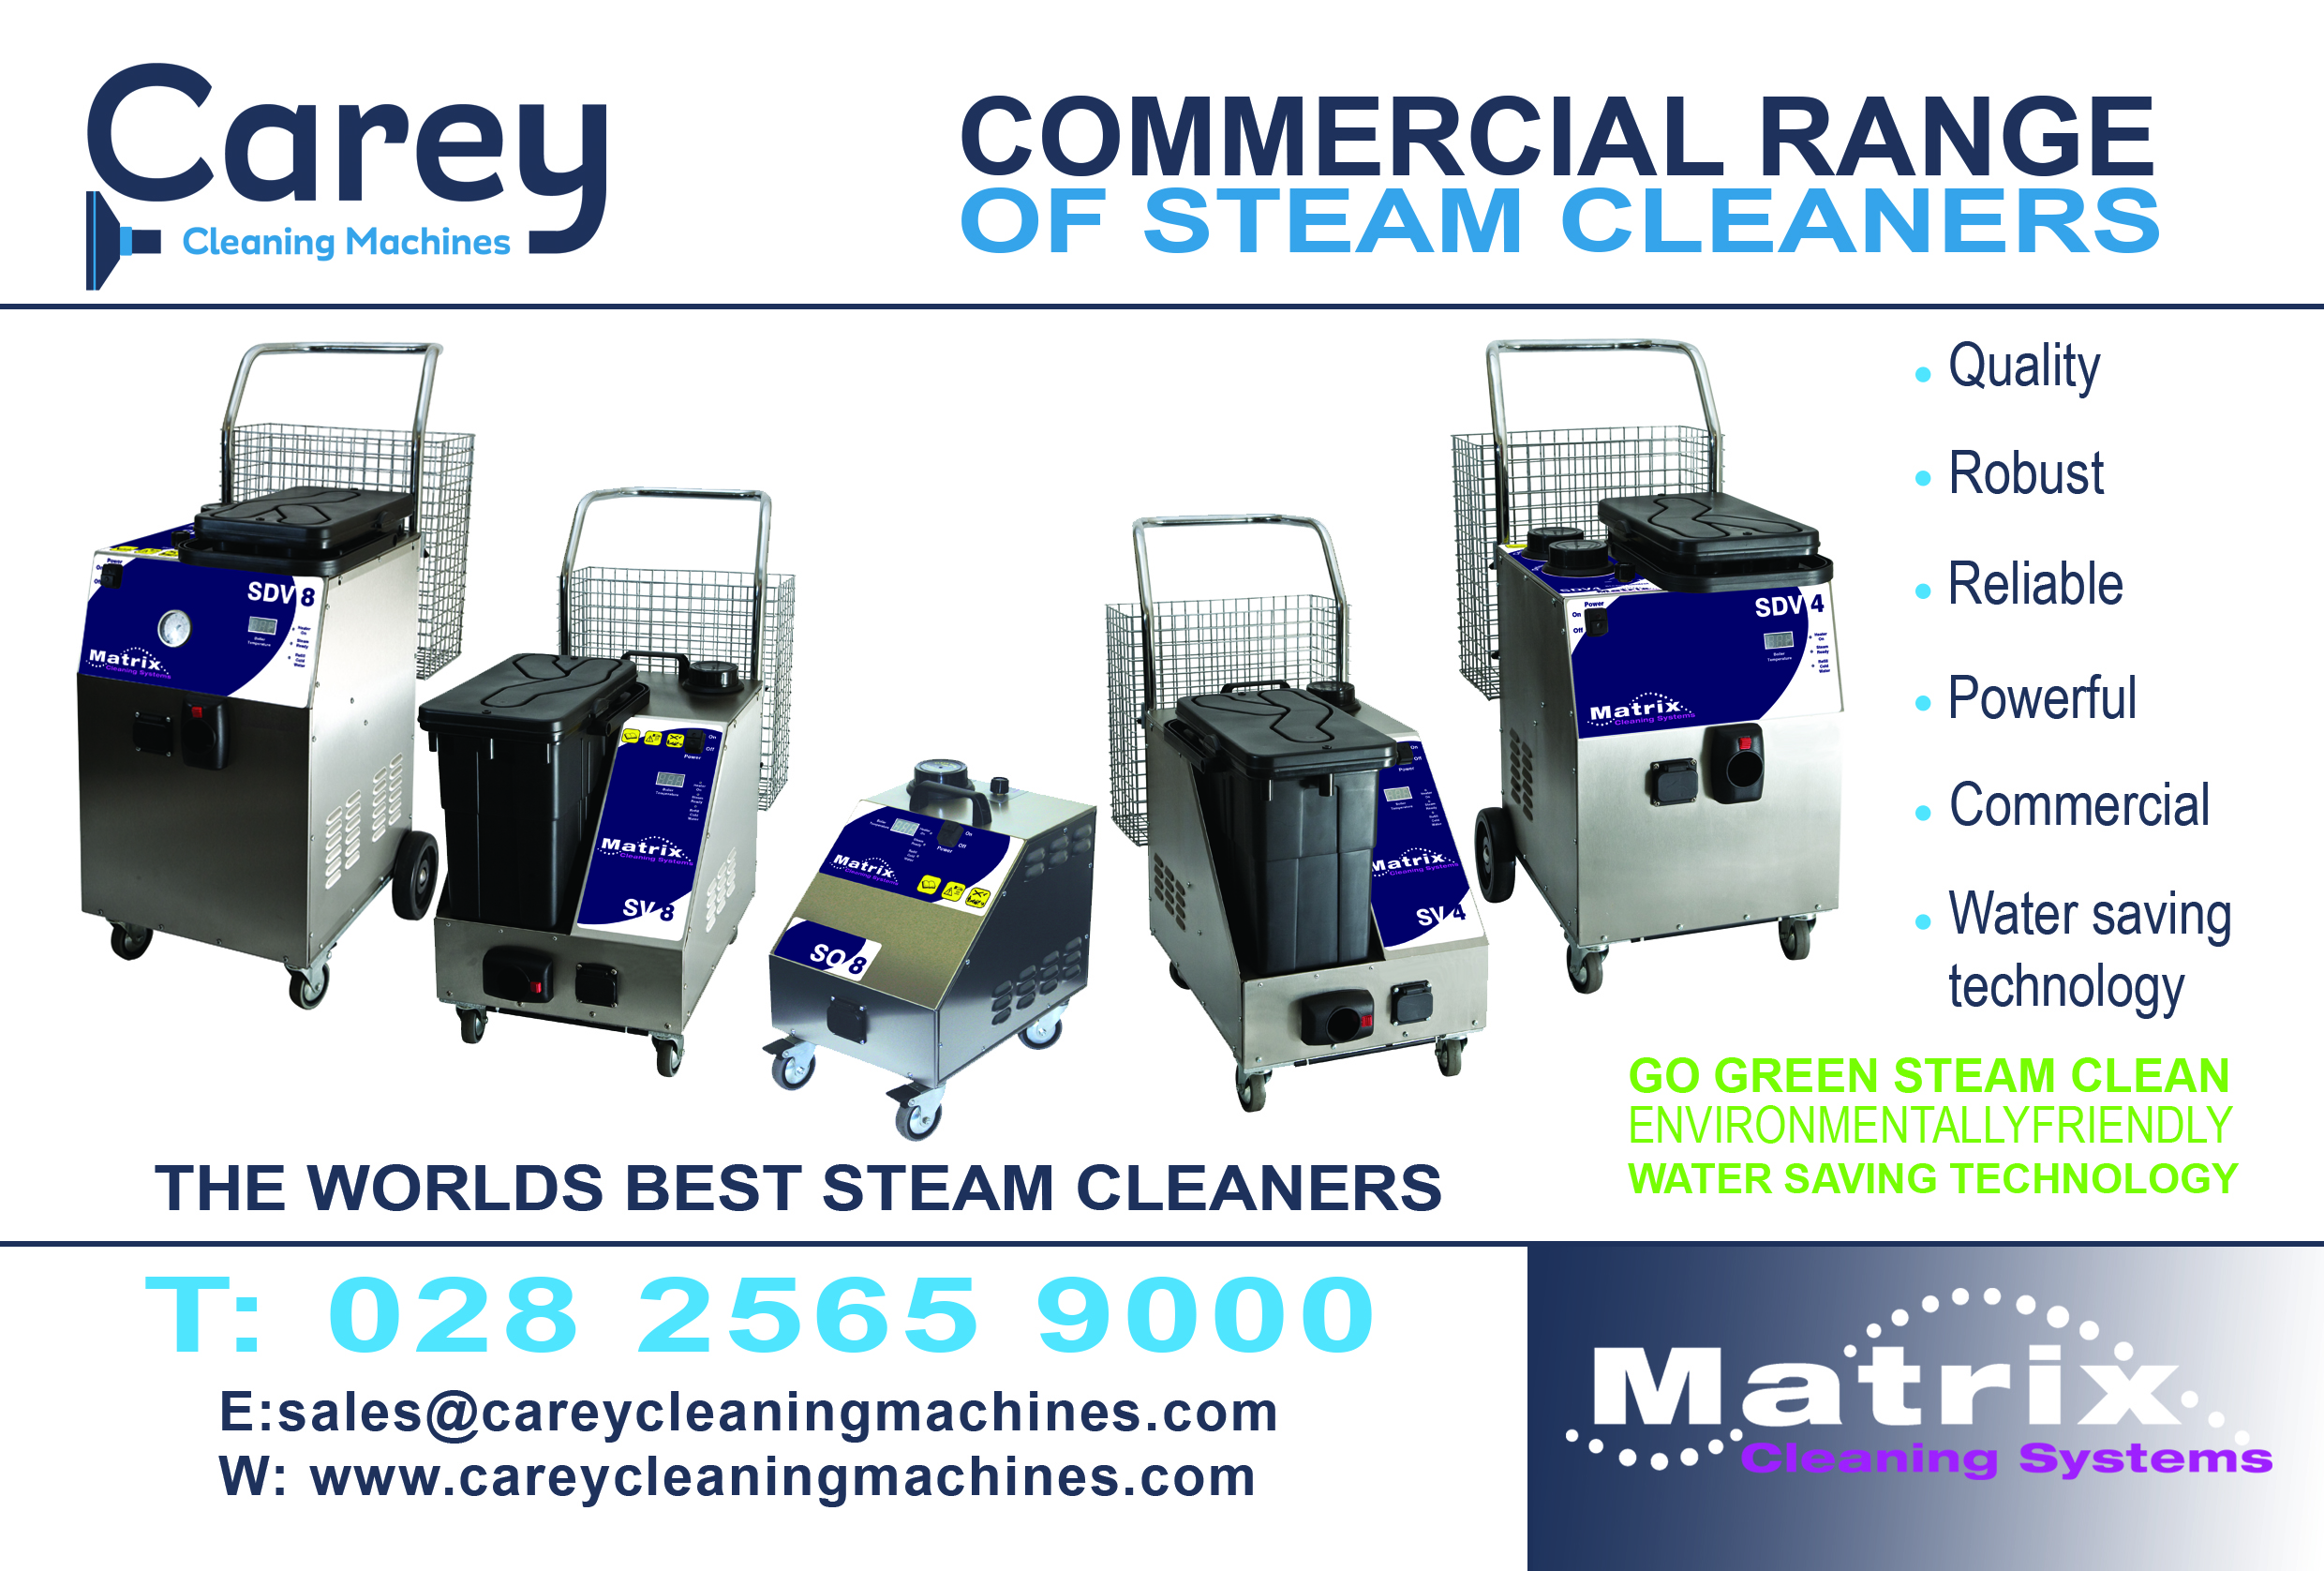 commercial-advert-2016-carey-cleaning-machines